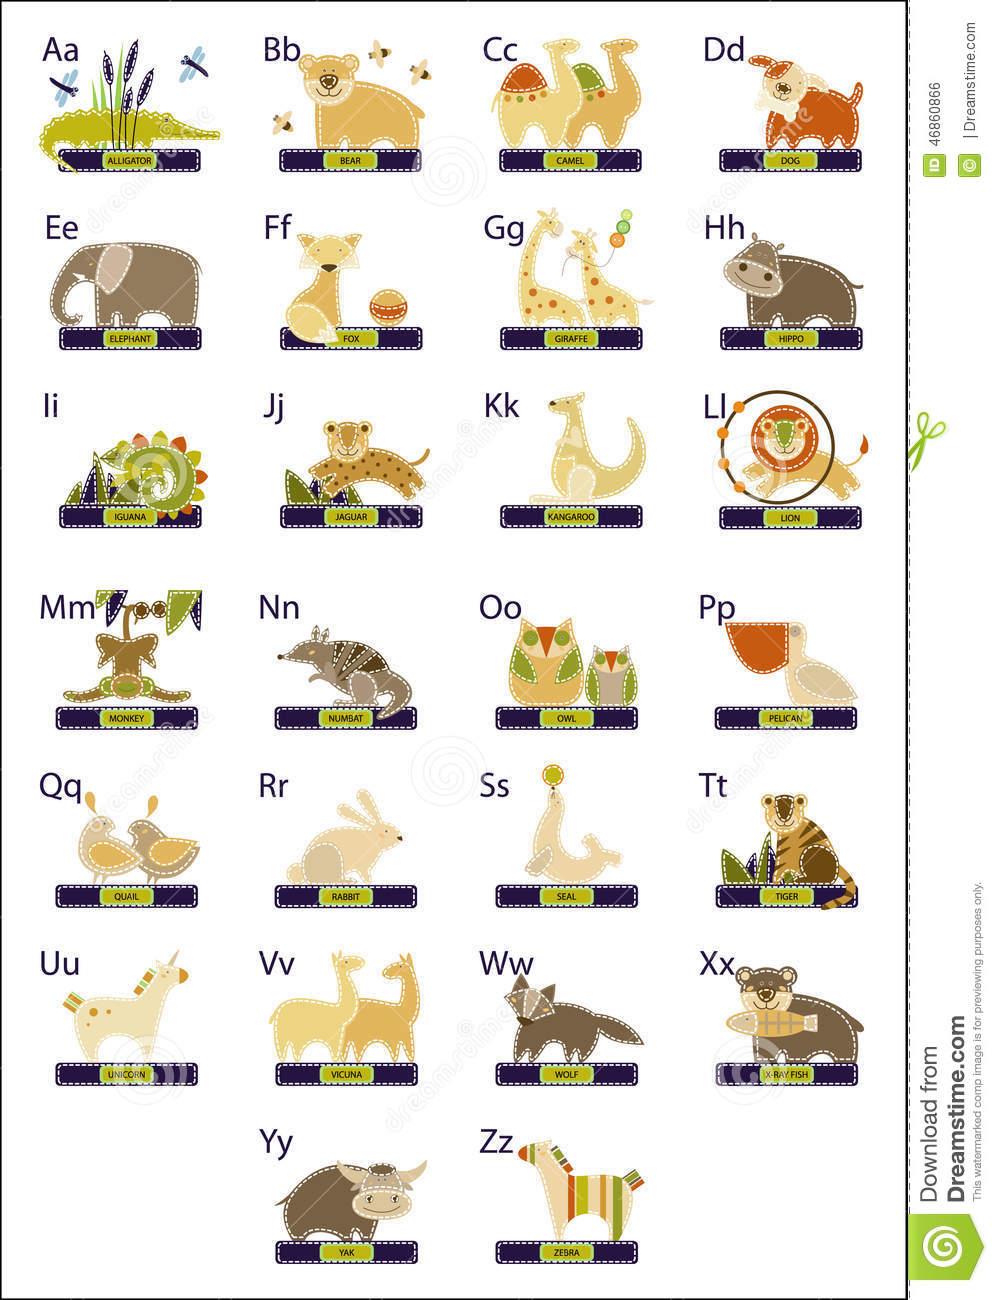 Image of: Chart Alphabet For Children With Picture And Name Of Wild Animals And Birds Dreamstimecom Alphabet Stock Vector Illustration Of Kangaroo Picture 46860866